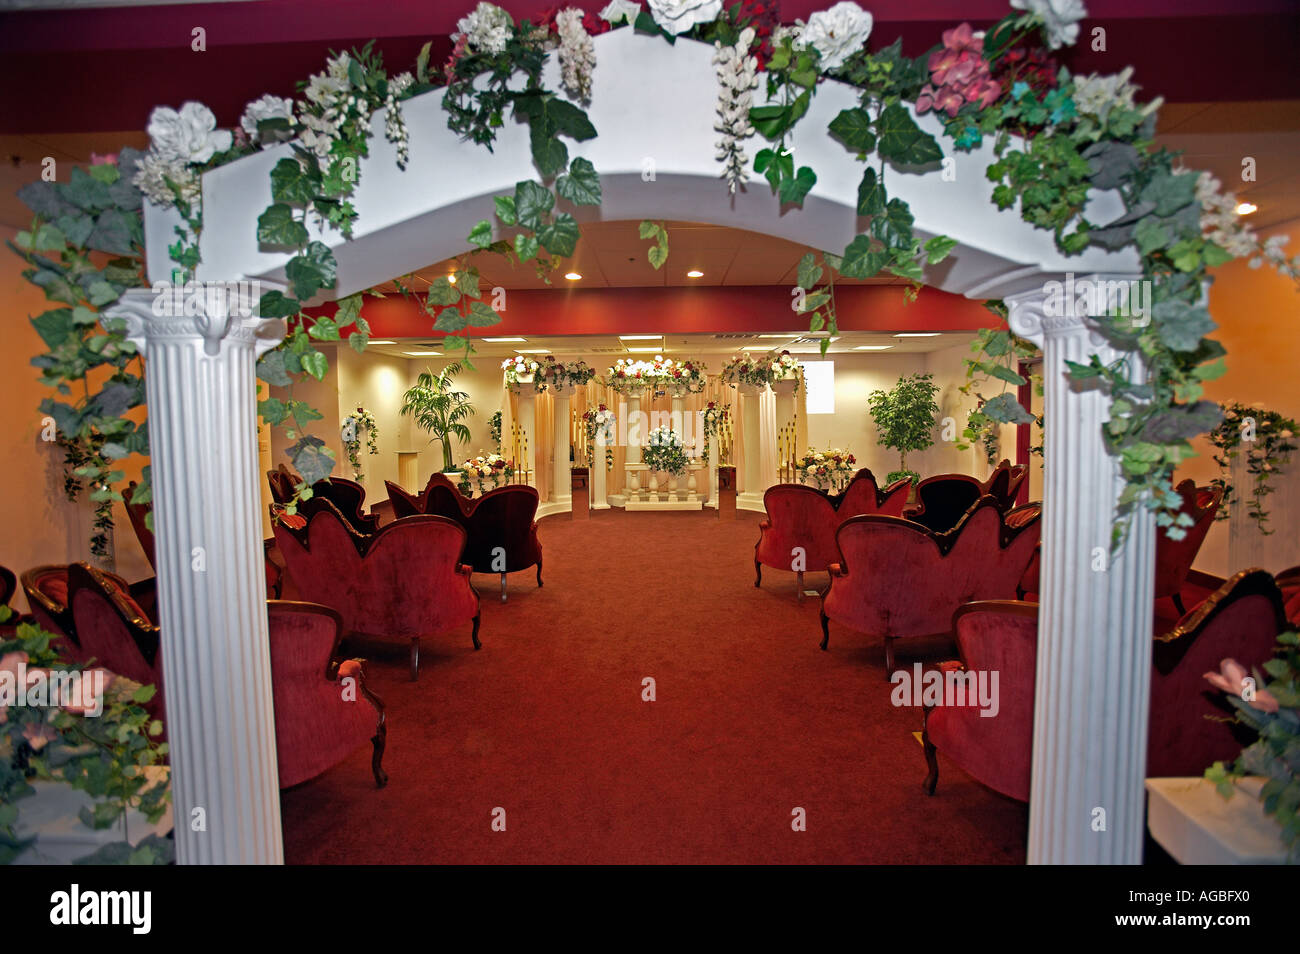 Little White Wedding Chapel.One Of The Chapels At The Famous Little White Wedding Chapel Las